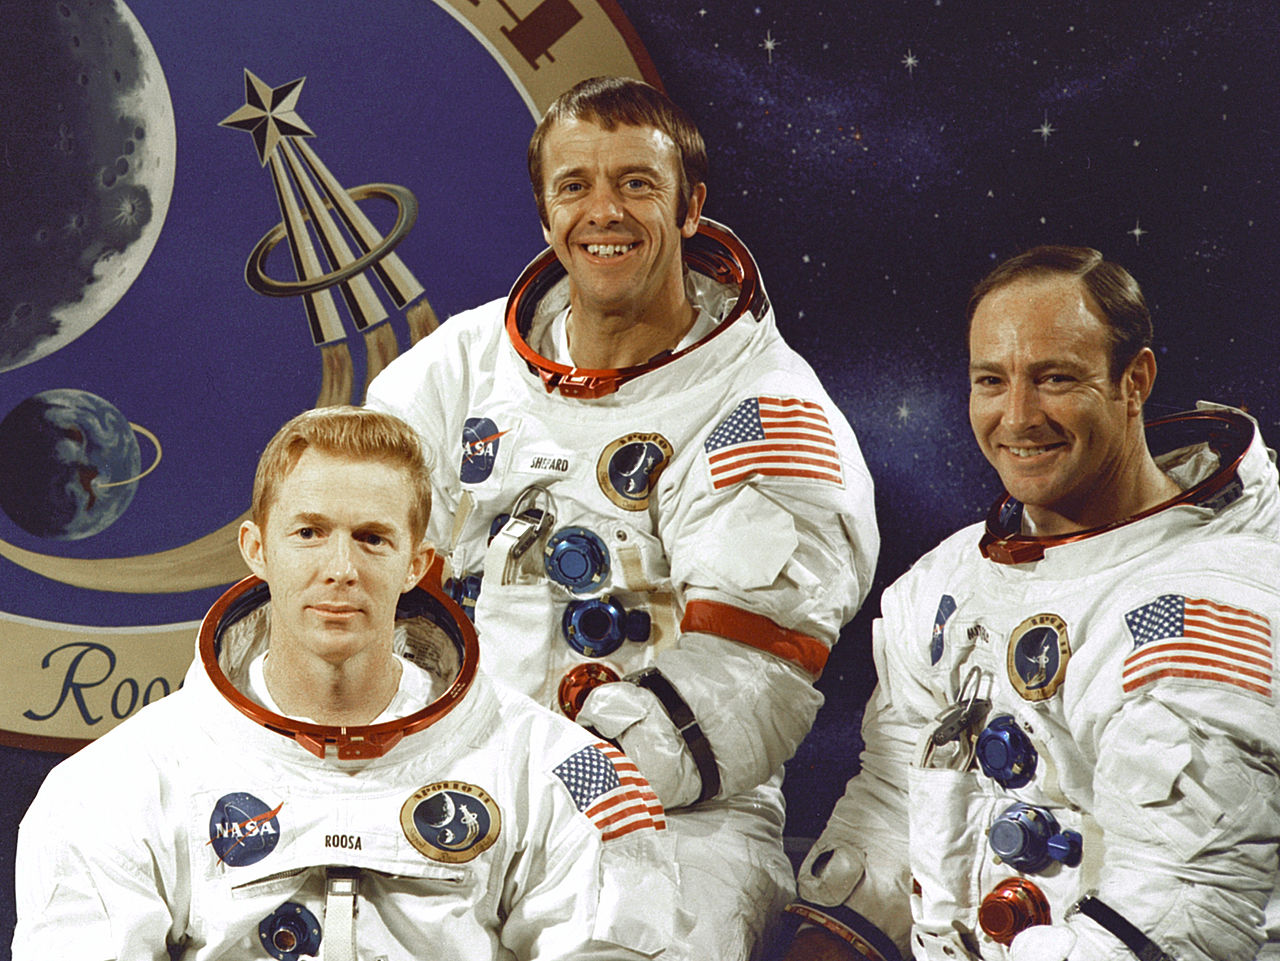 apollo 13 crew - photo #14